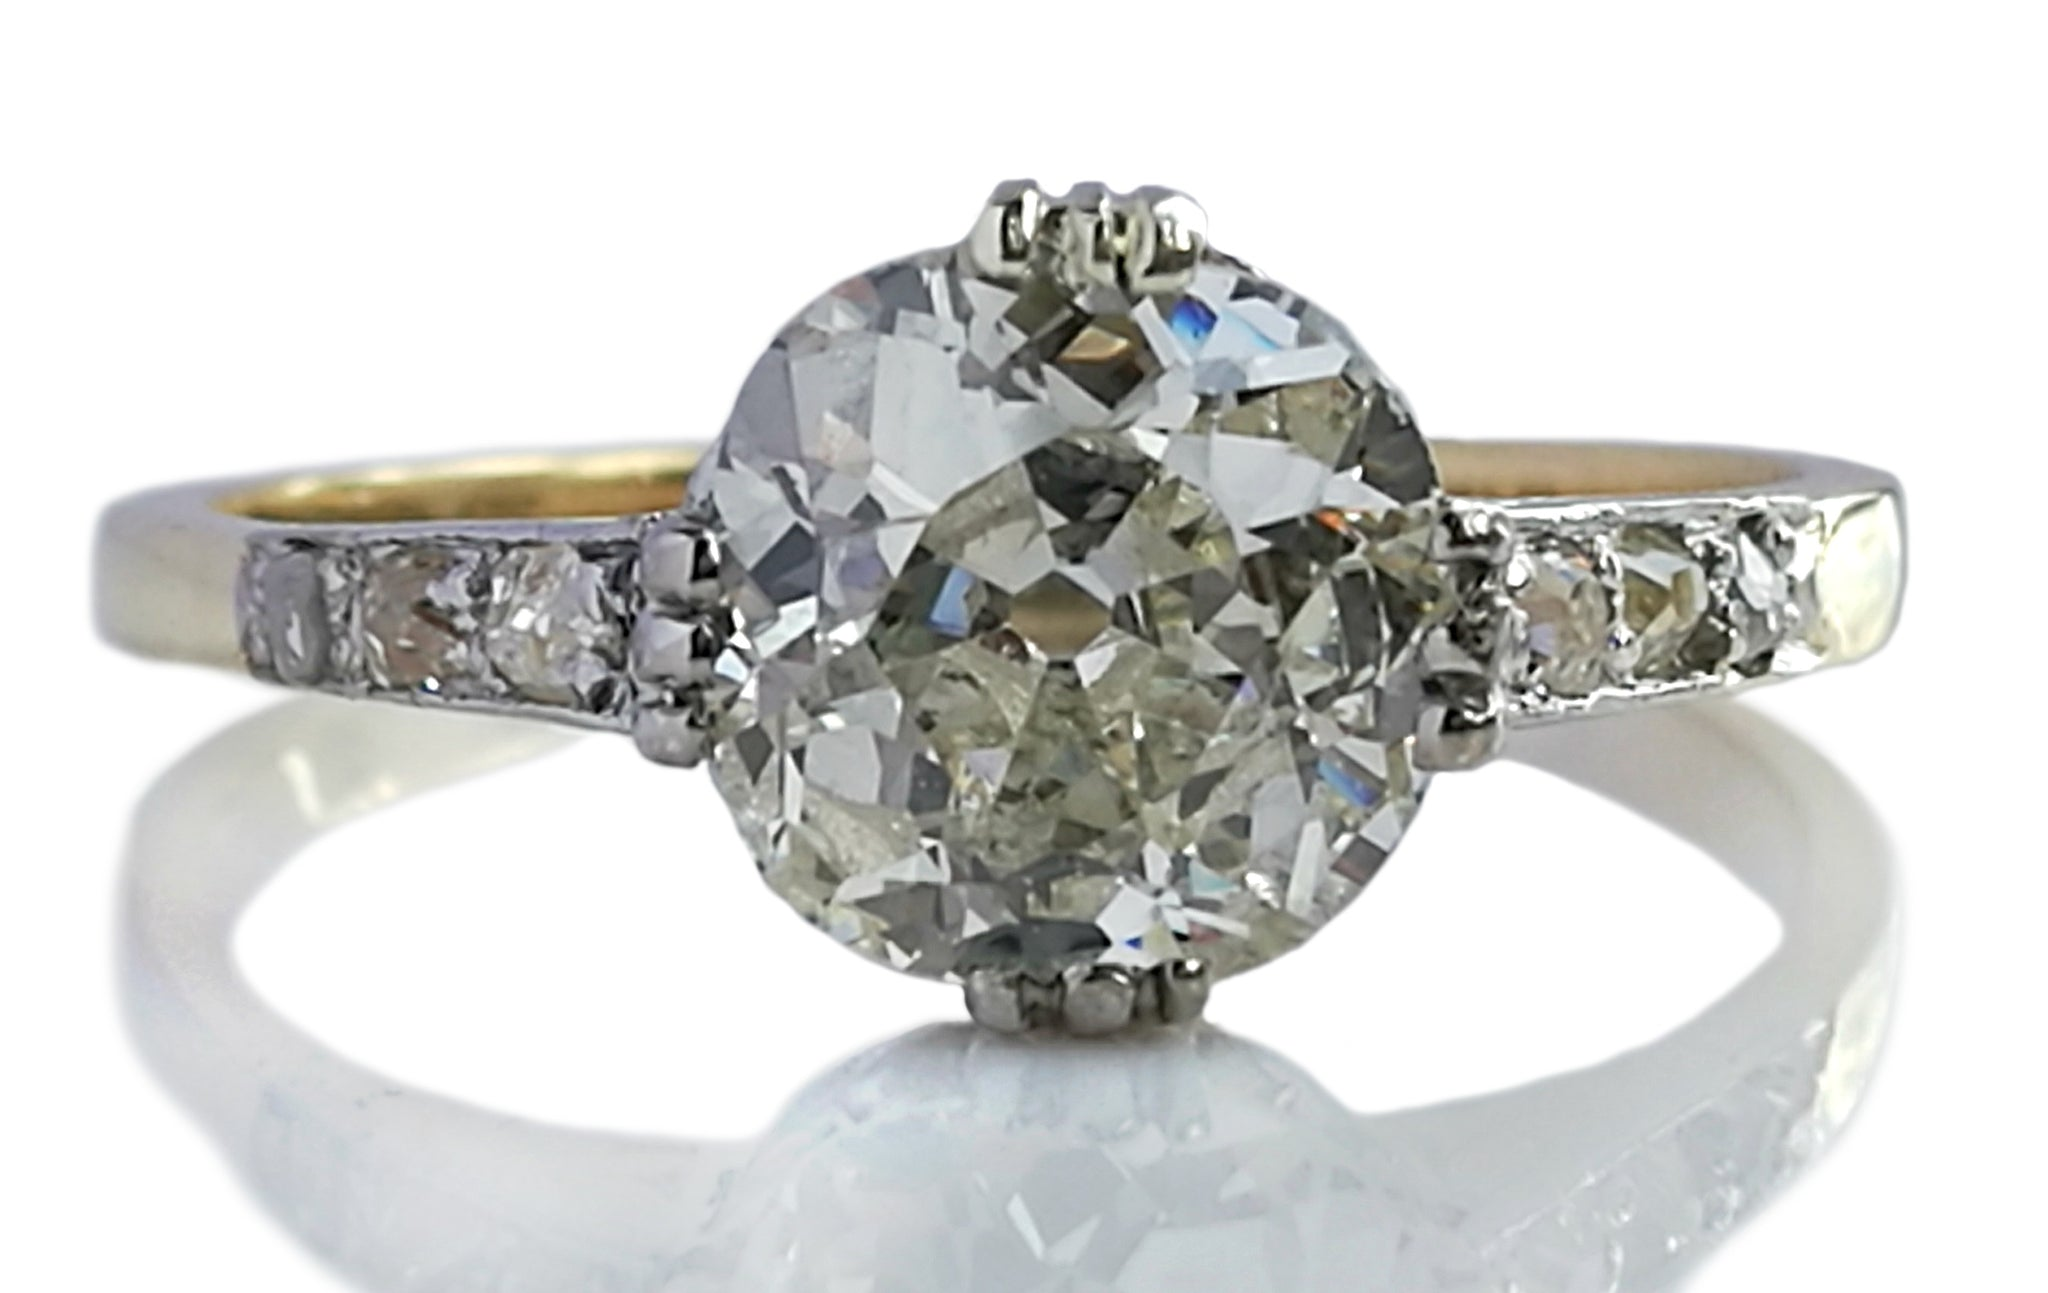 Antique Victorian 1.45ct Old Cut Diamond 14k Gold Engagement Ring